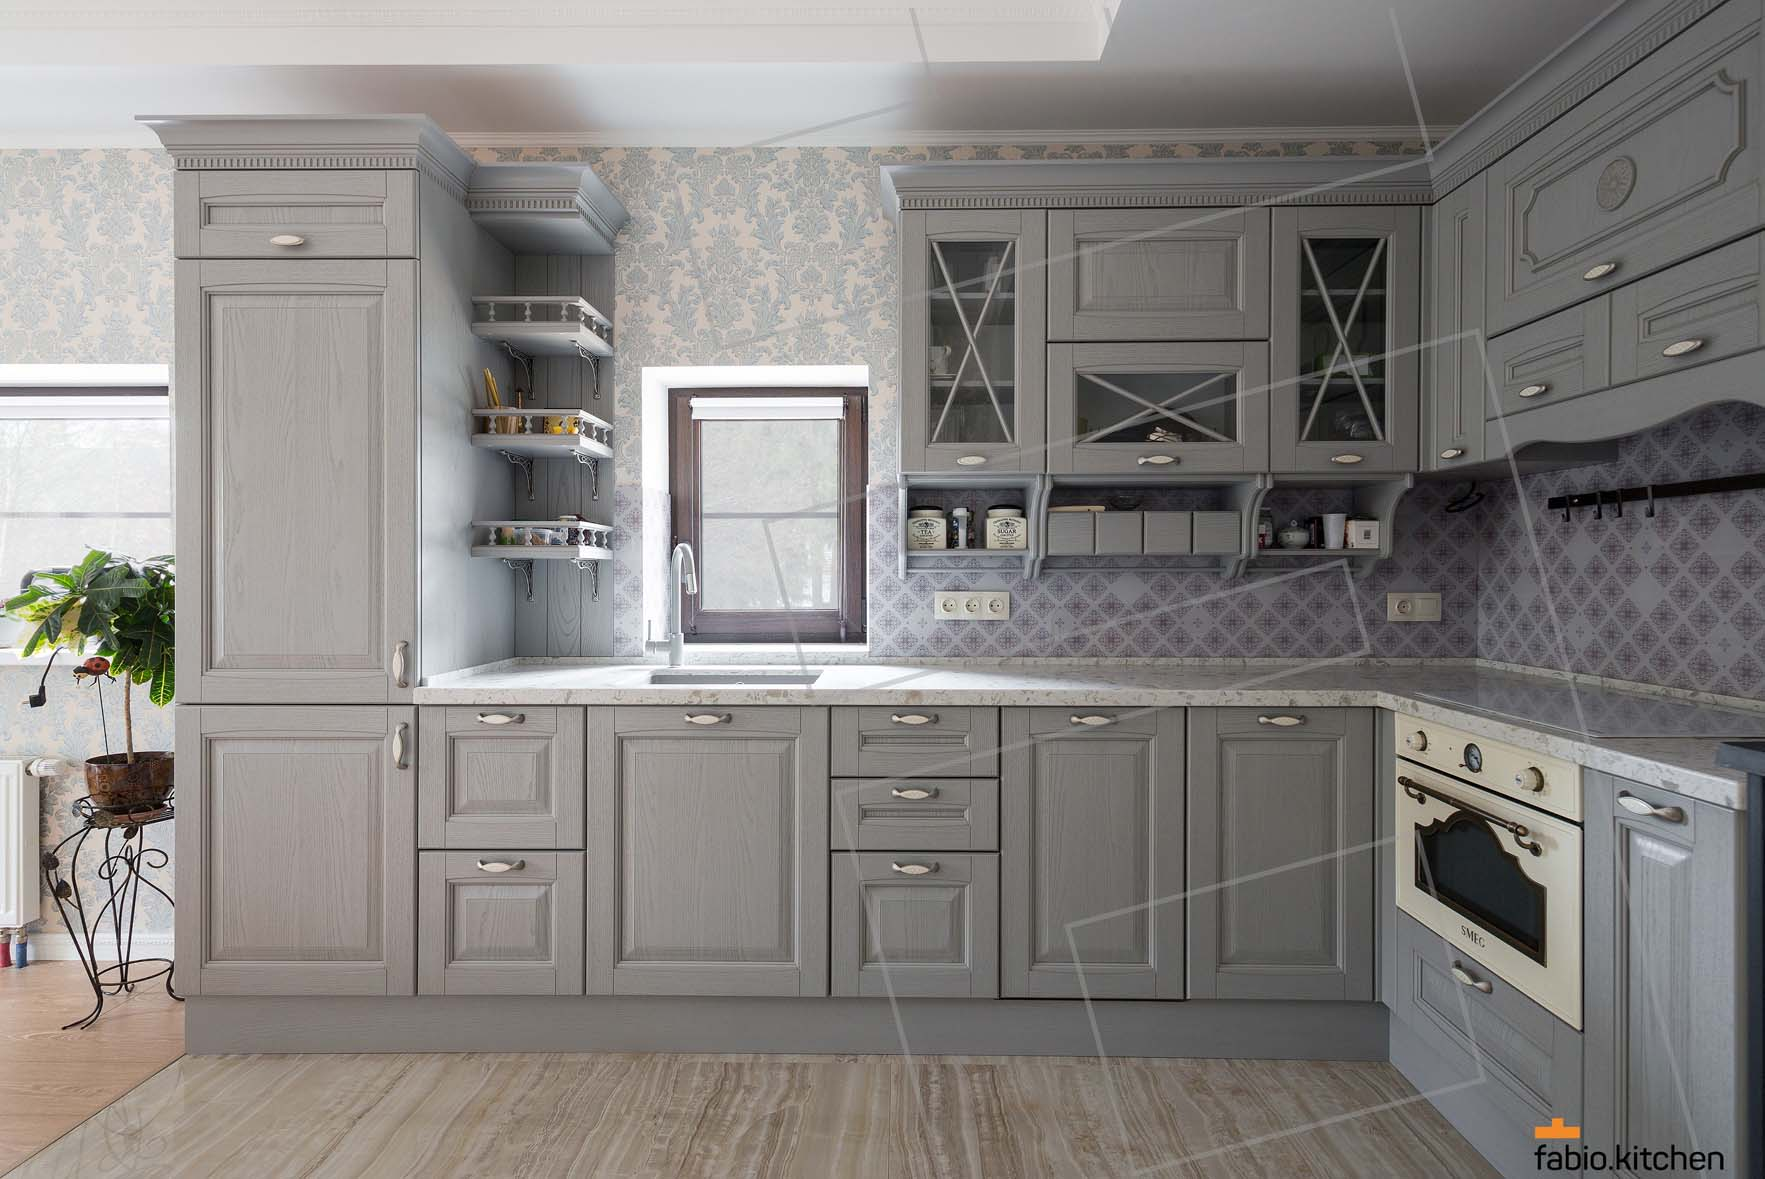 Fabio.Kitchen - Проект Кухни №173 Фото